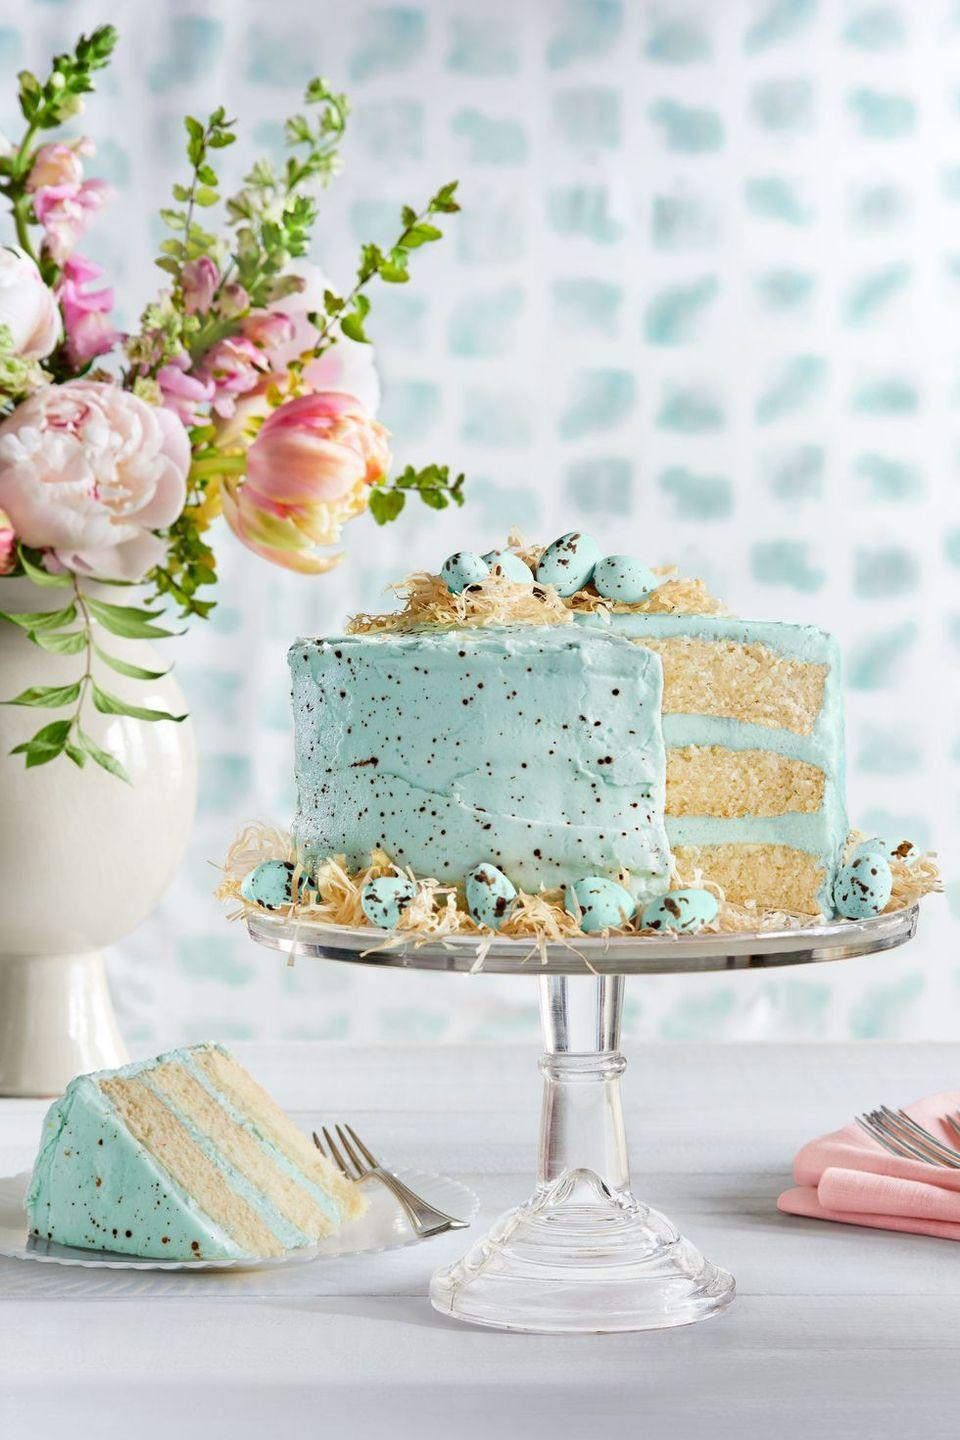 "<p>Top this cake with coconut-flavored buttercream frosting, phyllo nests, and robin's egg candies for the perfect springtime treat.</p><p><em><a href=""https://www.countryliving.com/food-drinks/recipes/a37729/speckled-malted-coconut-cake-recipe/"" rel=""nofollow noopener"" target=""_blank"" data-ylk=""slk:Get the recipe from Country Living »"" class=""link rapid-noclick-resp"">Get the recipe from Country Living »</a></em> </p>"